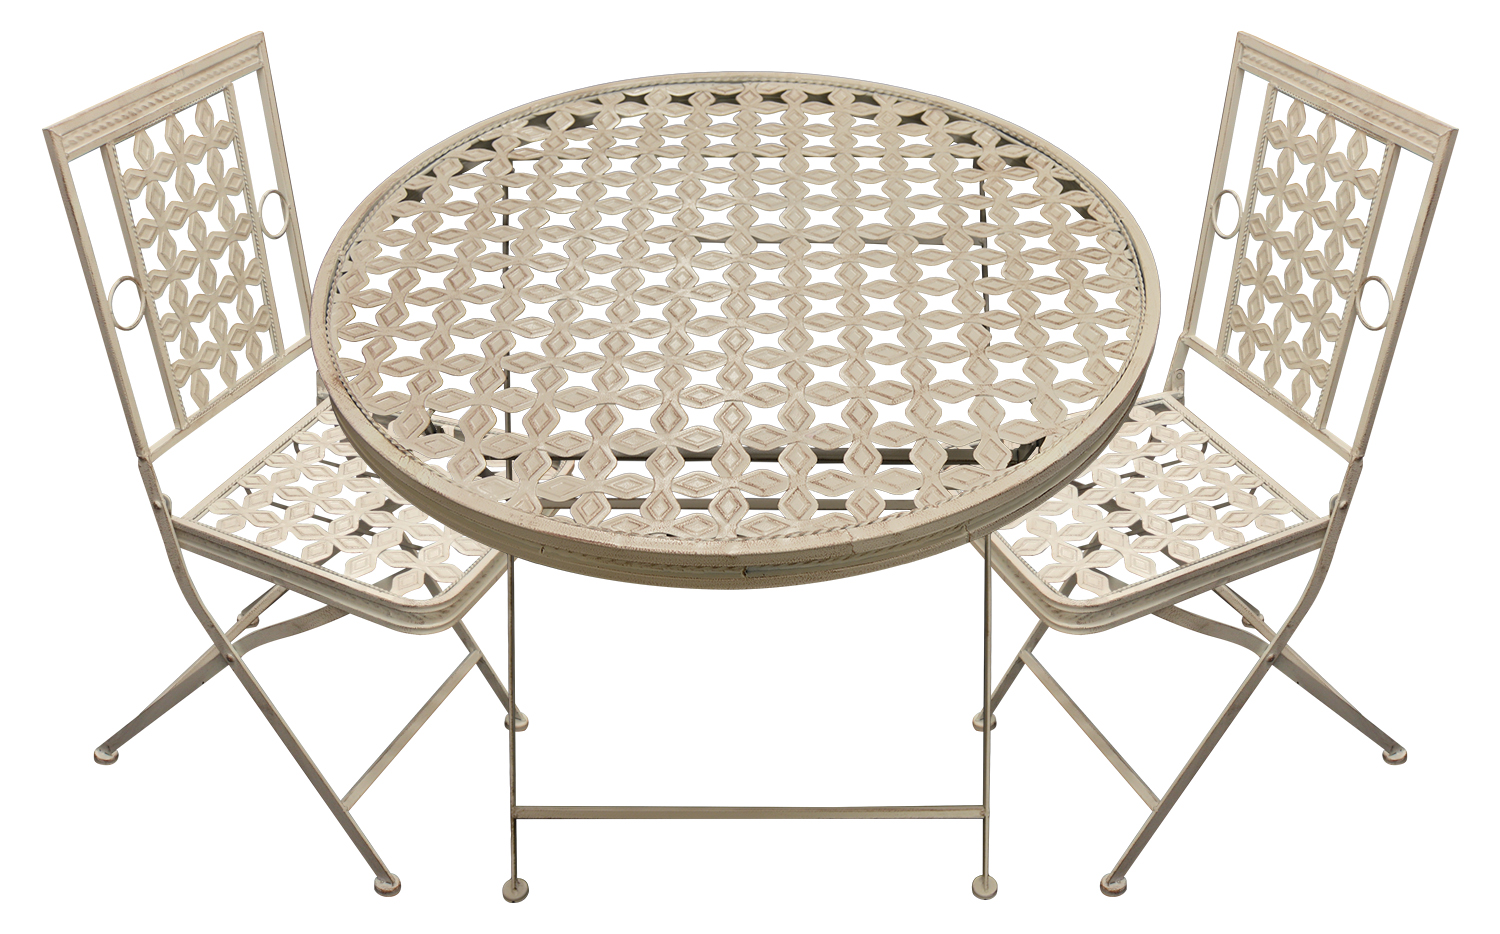 Folding Round Garden Patio Table With 2 Square Chairs